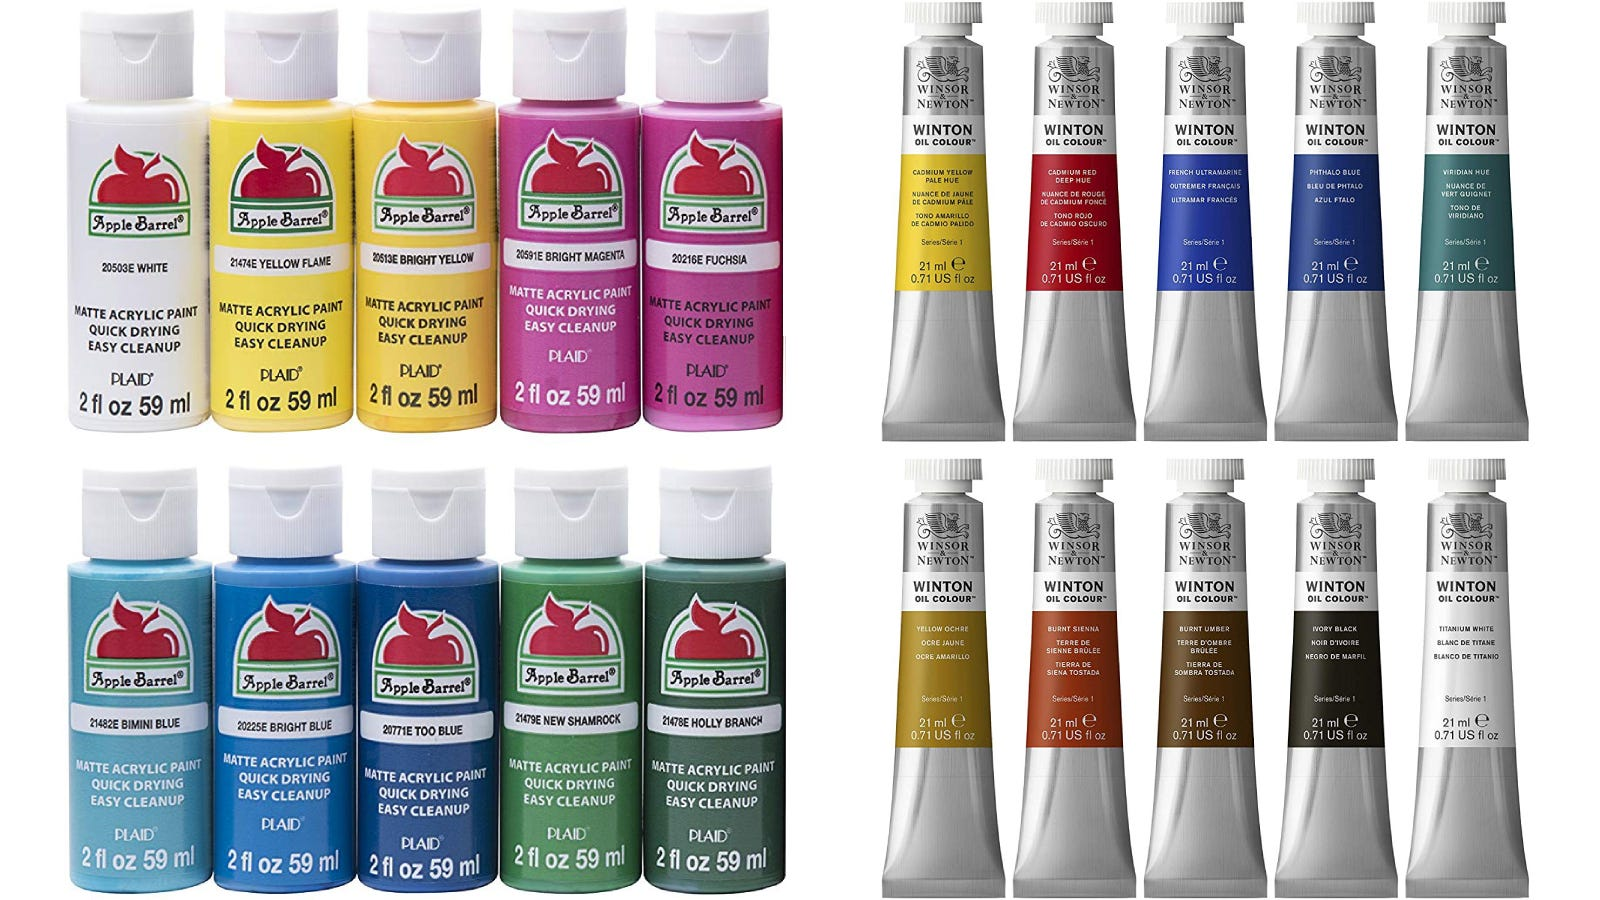 10 bottles of Apple Barrel acrylic paints in various colors, and 10 tubes of Winsor & Newton oil paints in various colors.